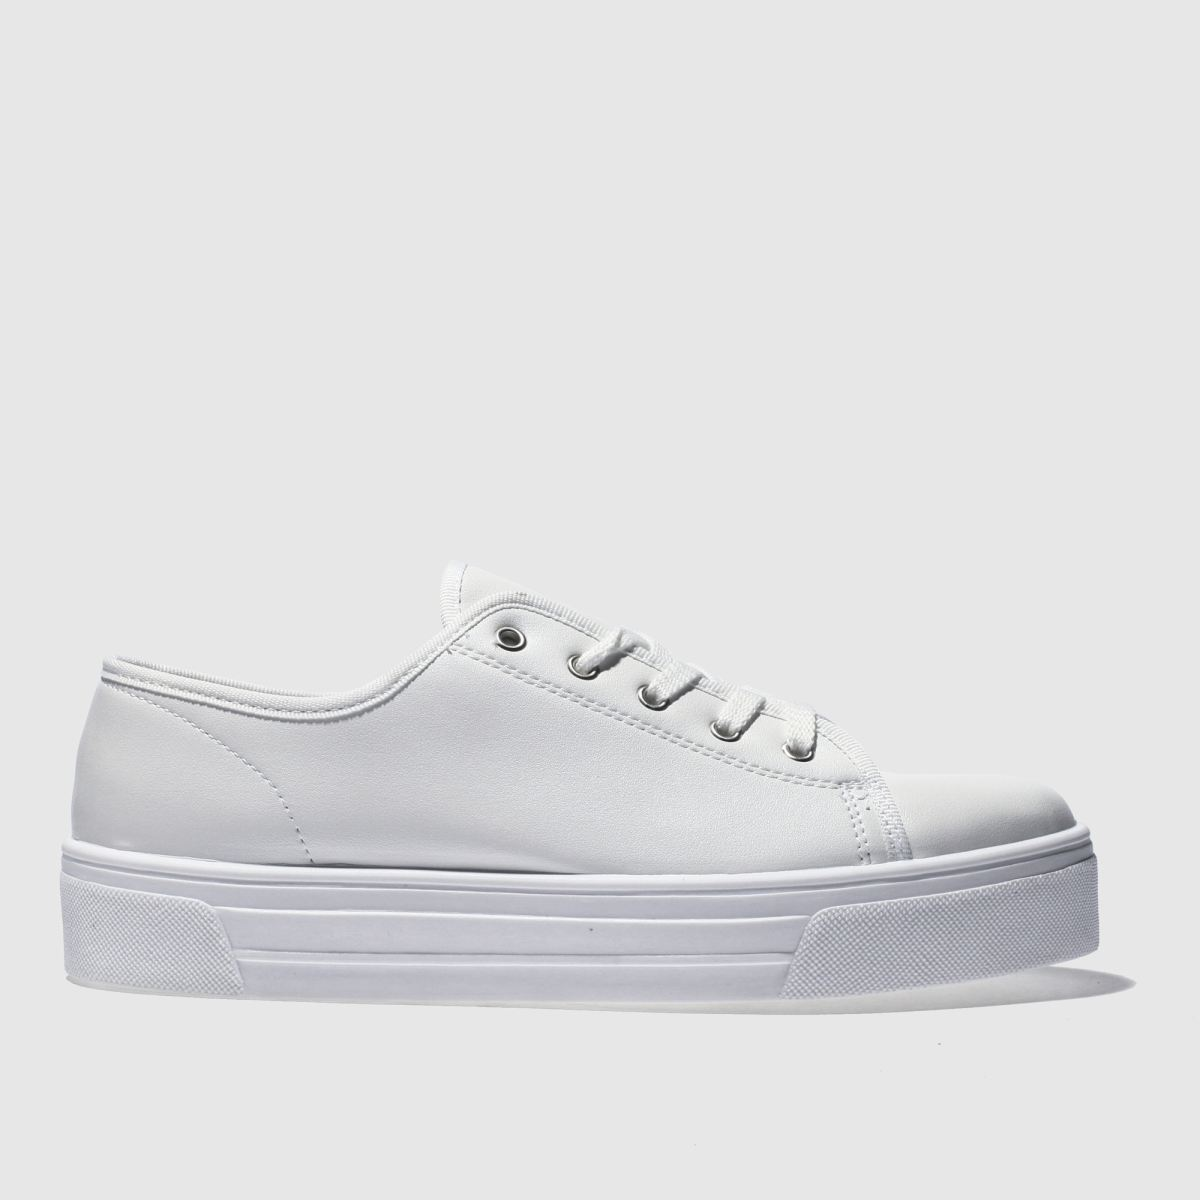 Schuh White & Silver Sneaky Flat Shoes